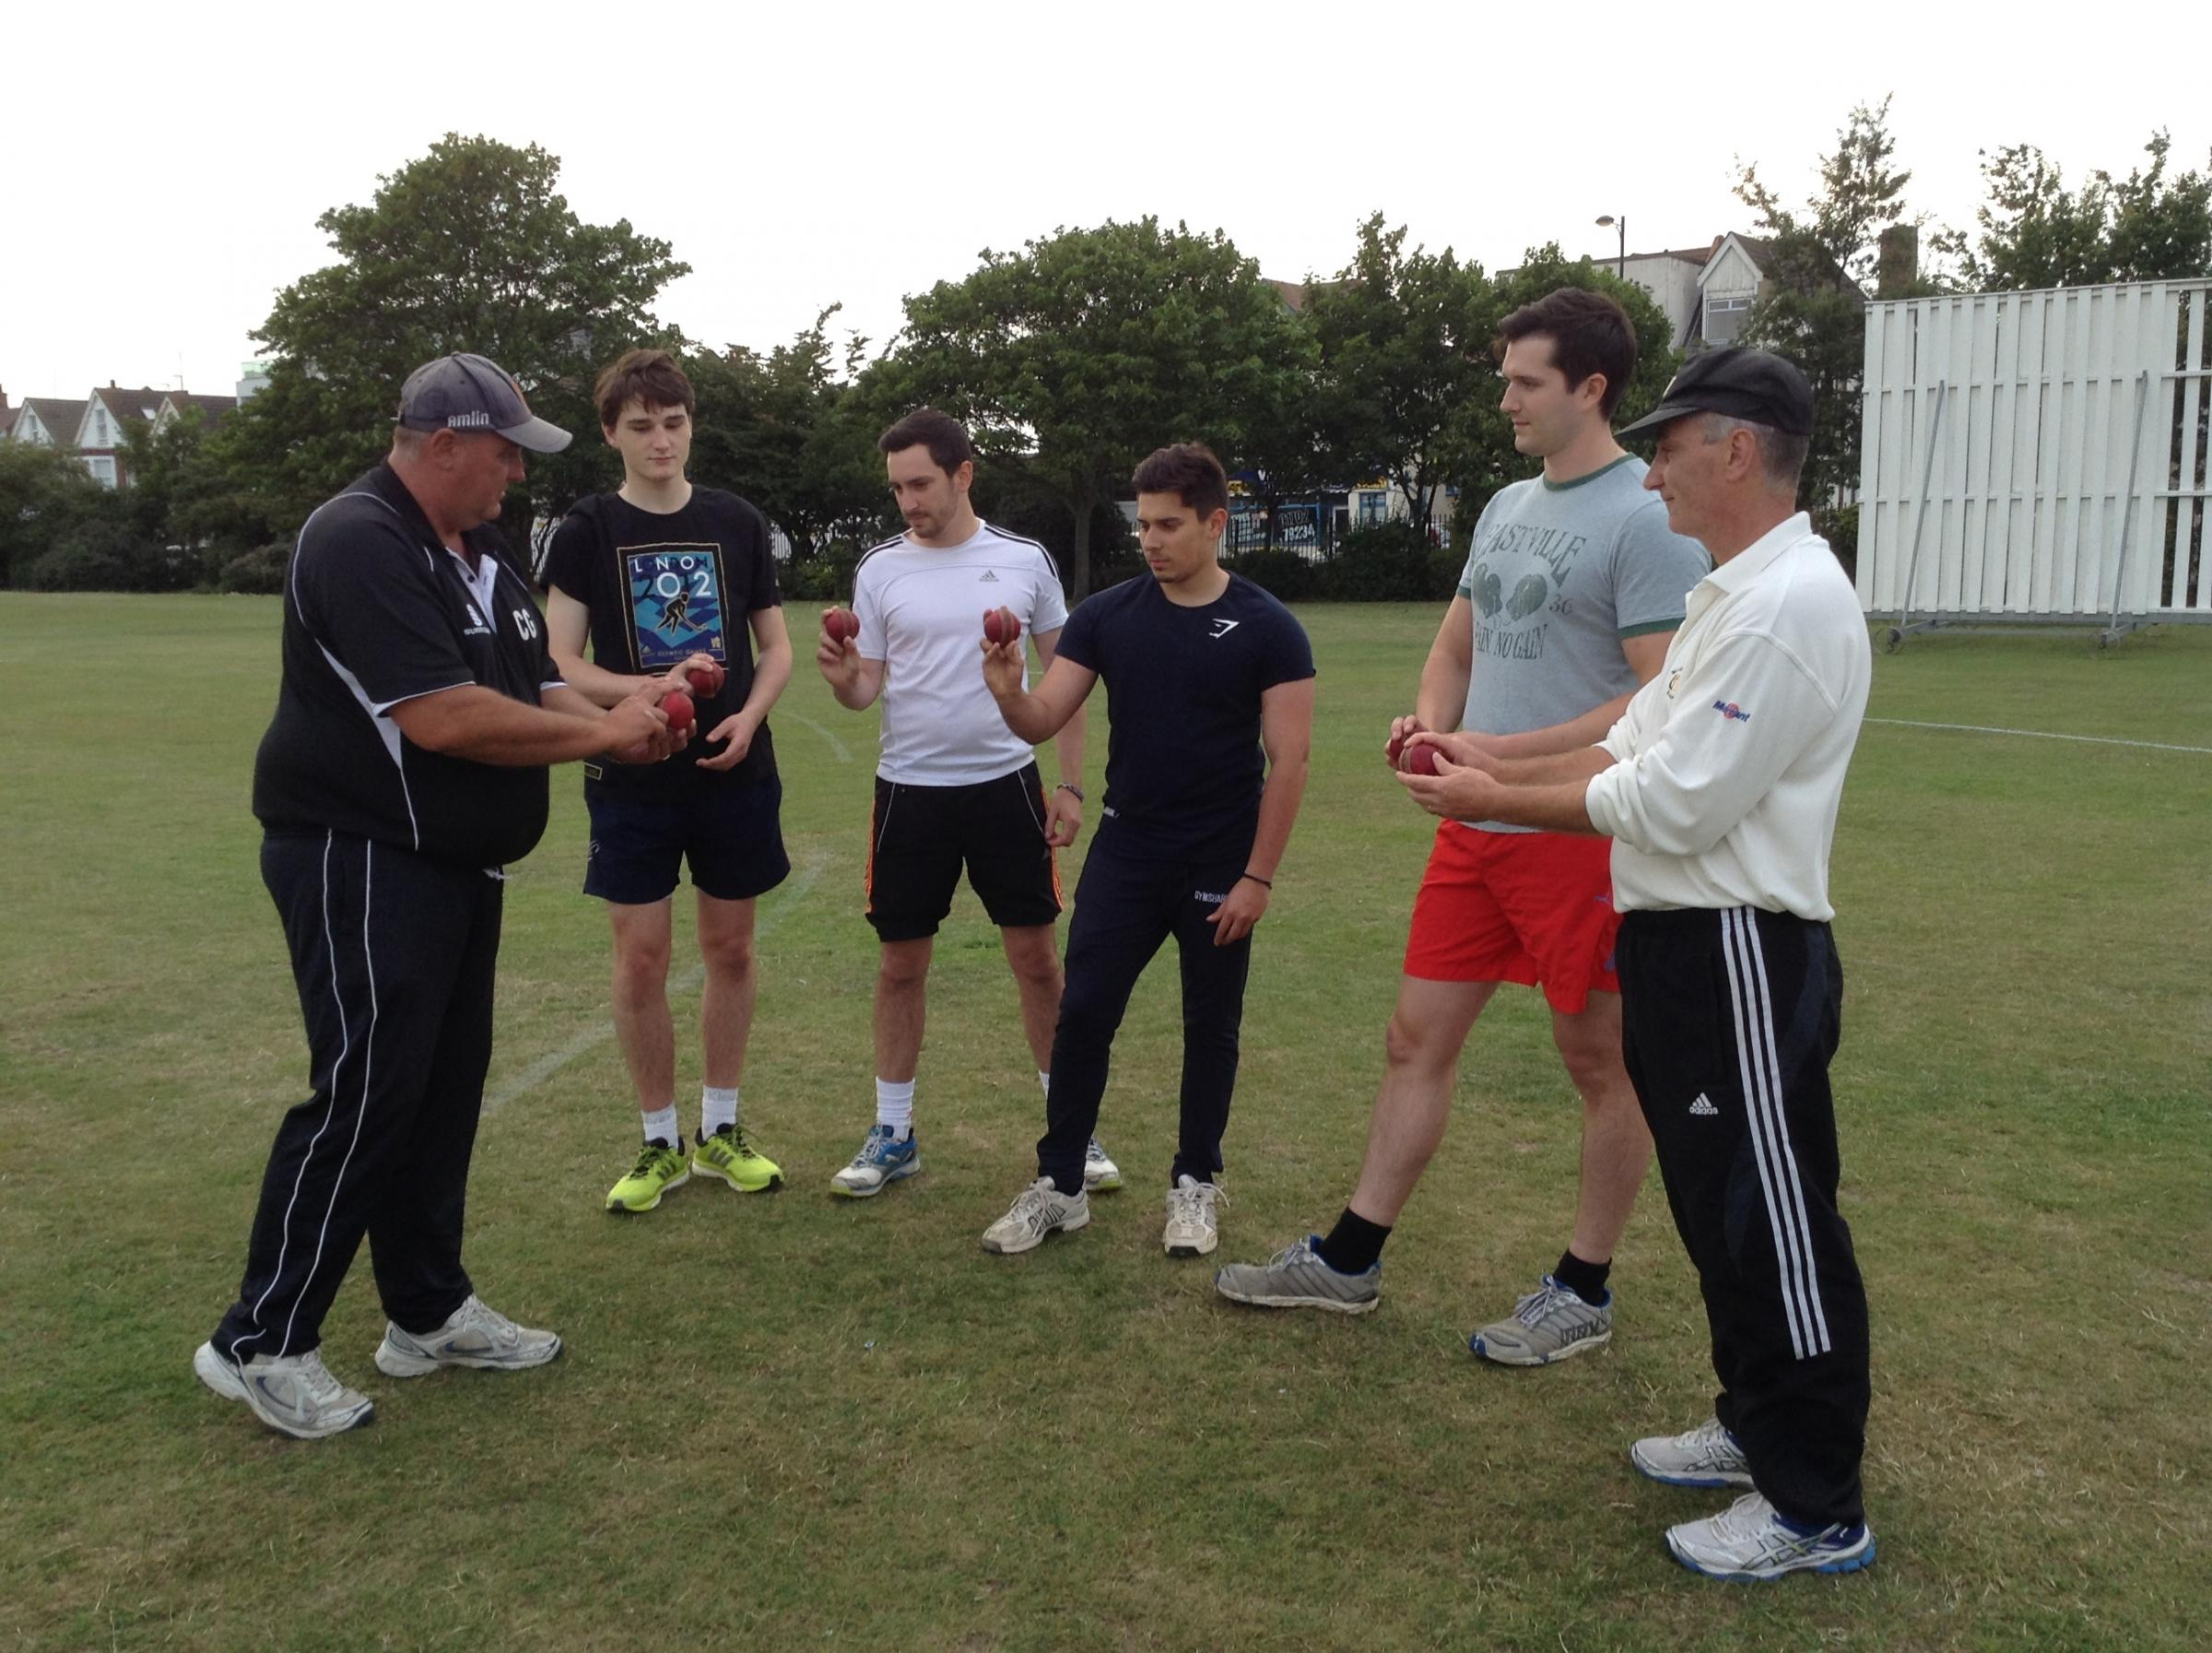 Chris Gladwin Chris Gladwin inspires Westcliff Cricket Club revival From Echo